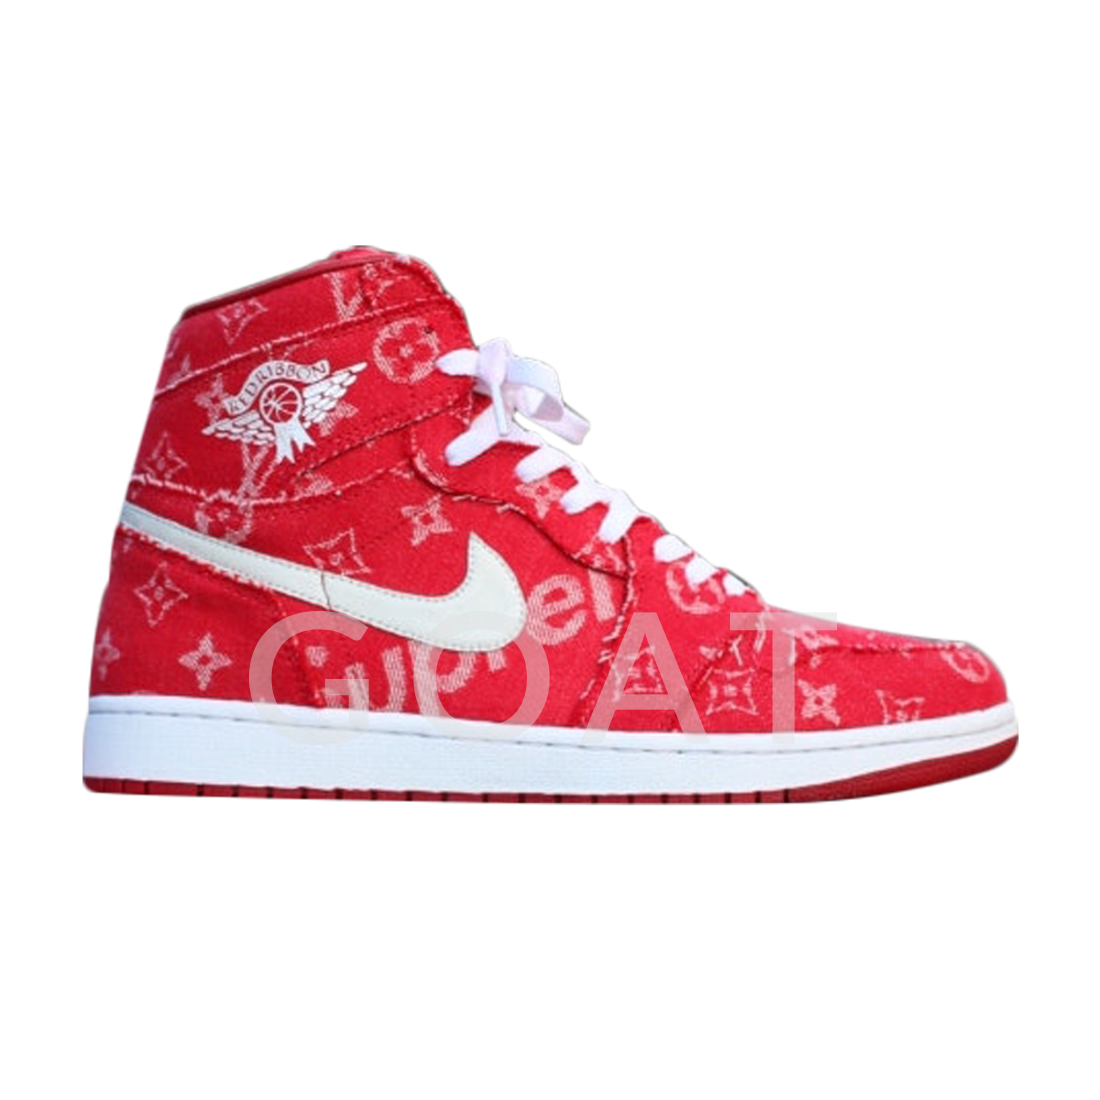 c51ccaa122af Supreme x Louis Vuitton x Red Ribbon Recon x Air Jordan 1 Retro High - Air  Jordan - - multi-color multi-color